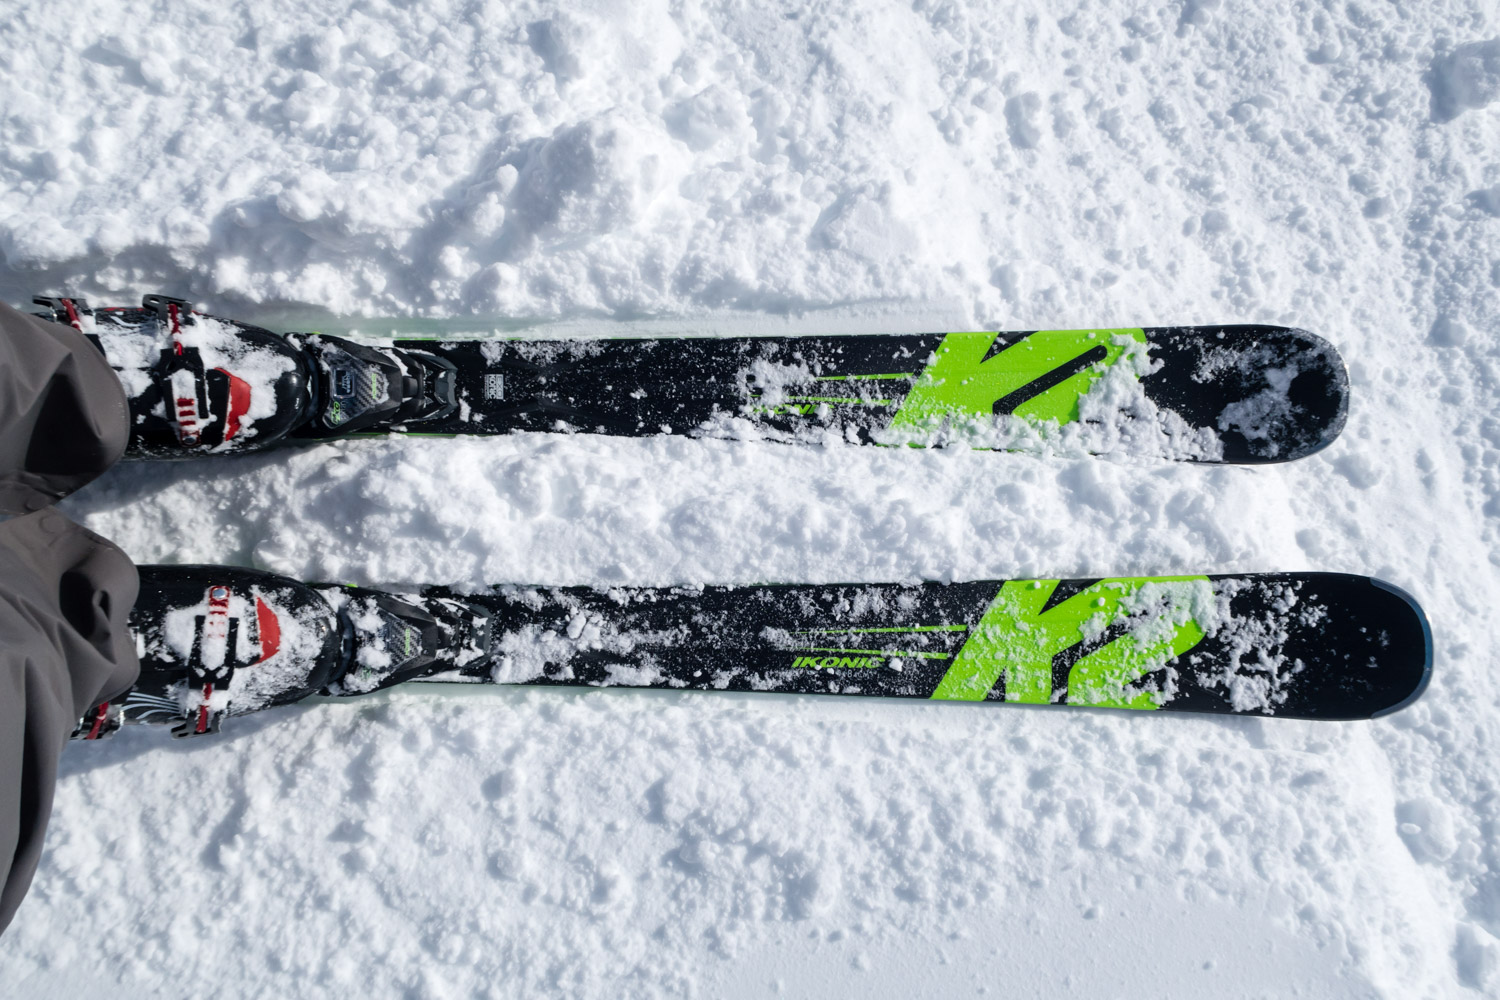 Skitjek: Test af all-mountain ski